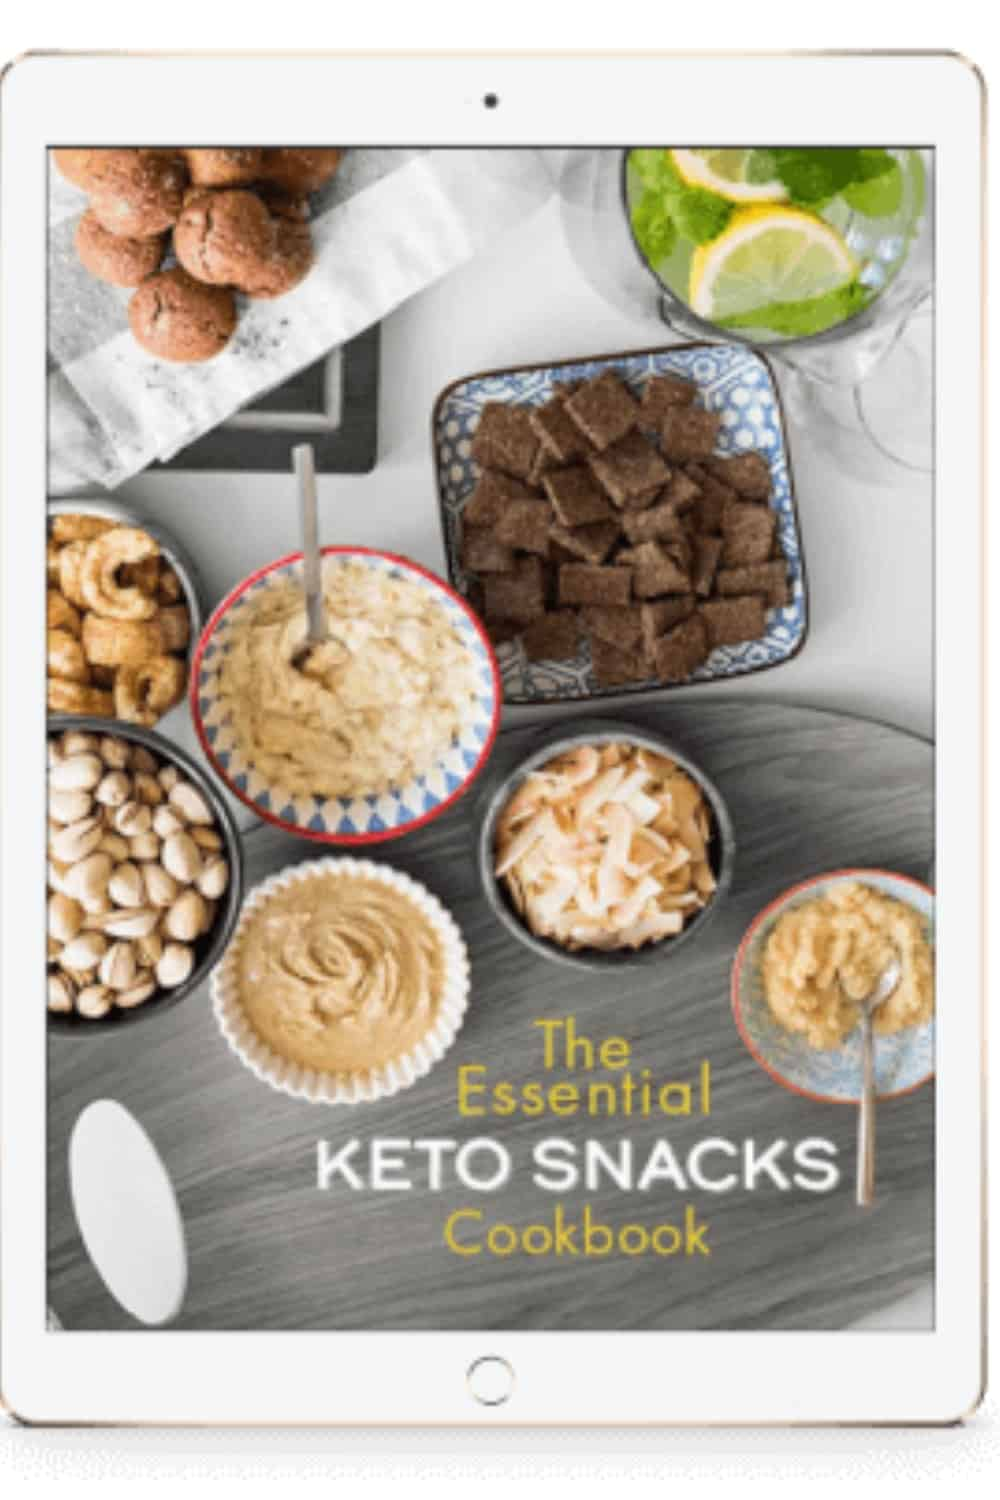 the essential keto snacks cookbooks on iPad